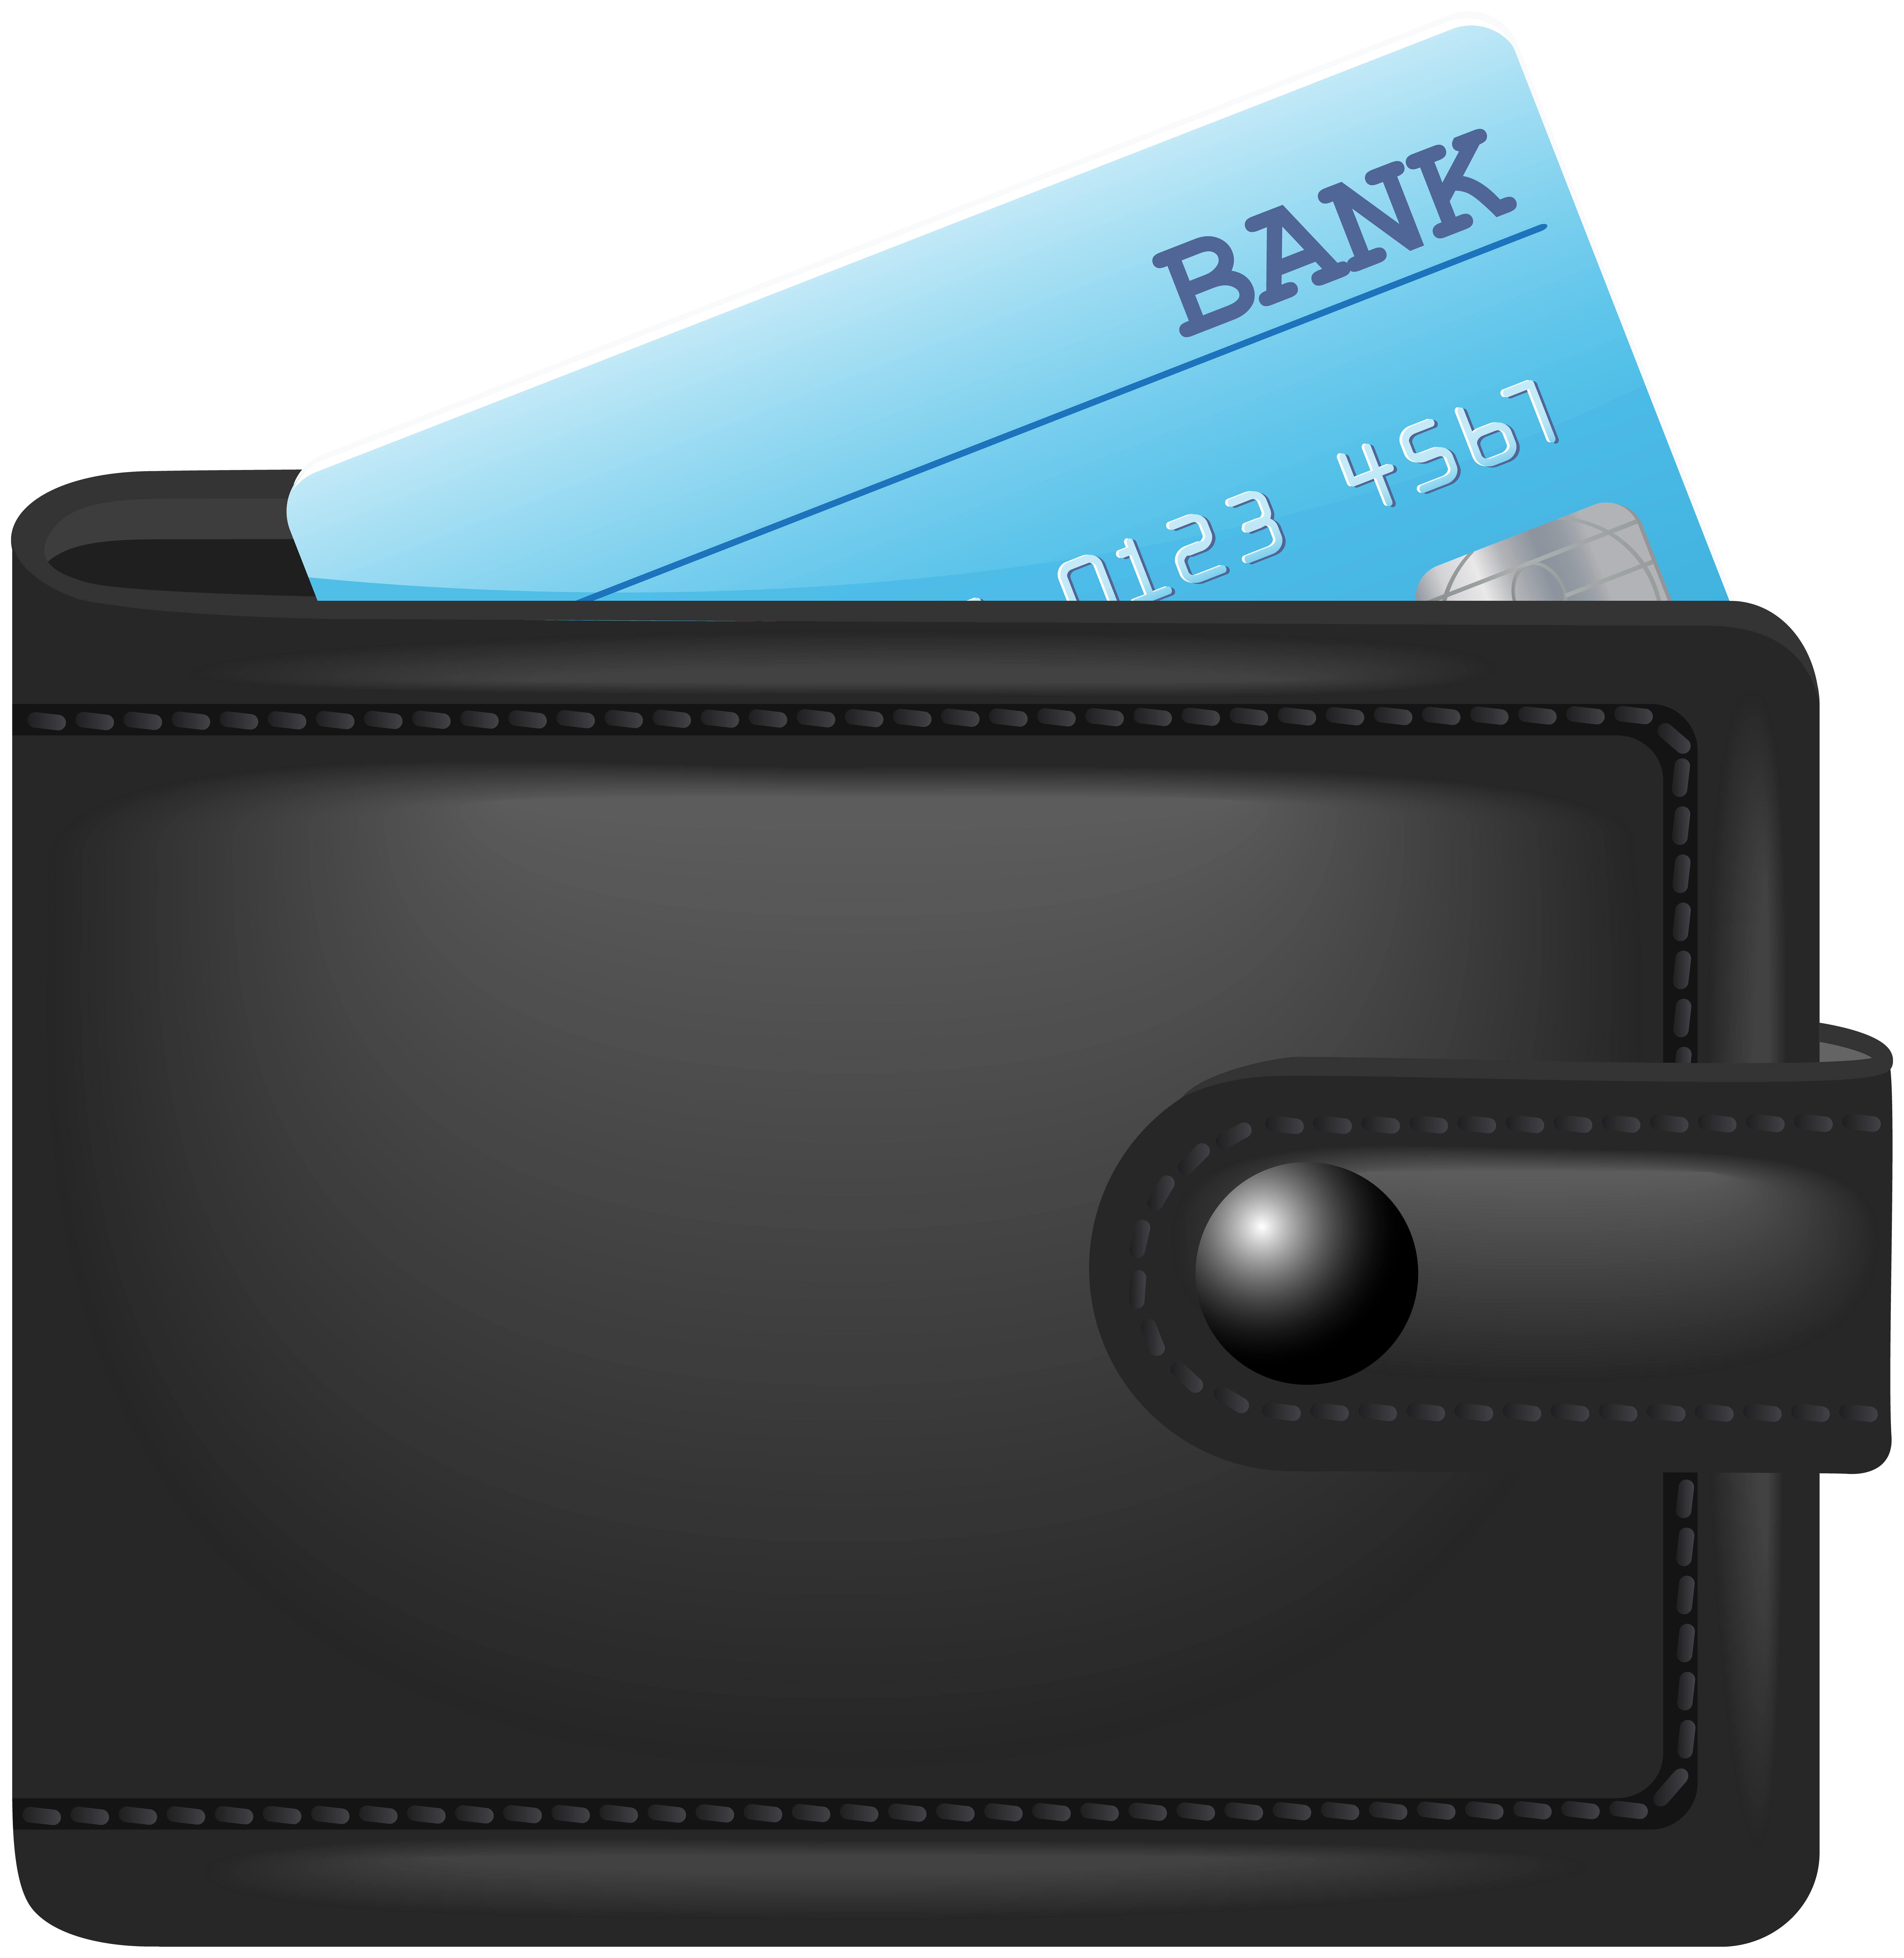 Wallet clipart credit. With card png clip